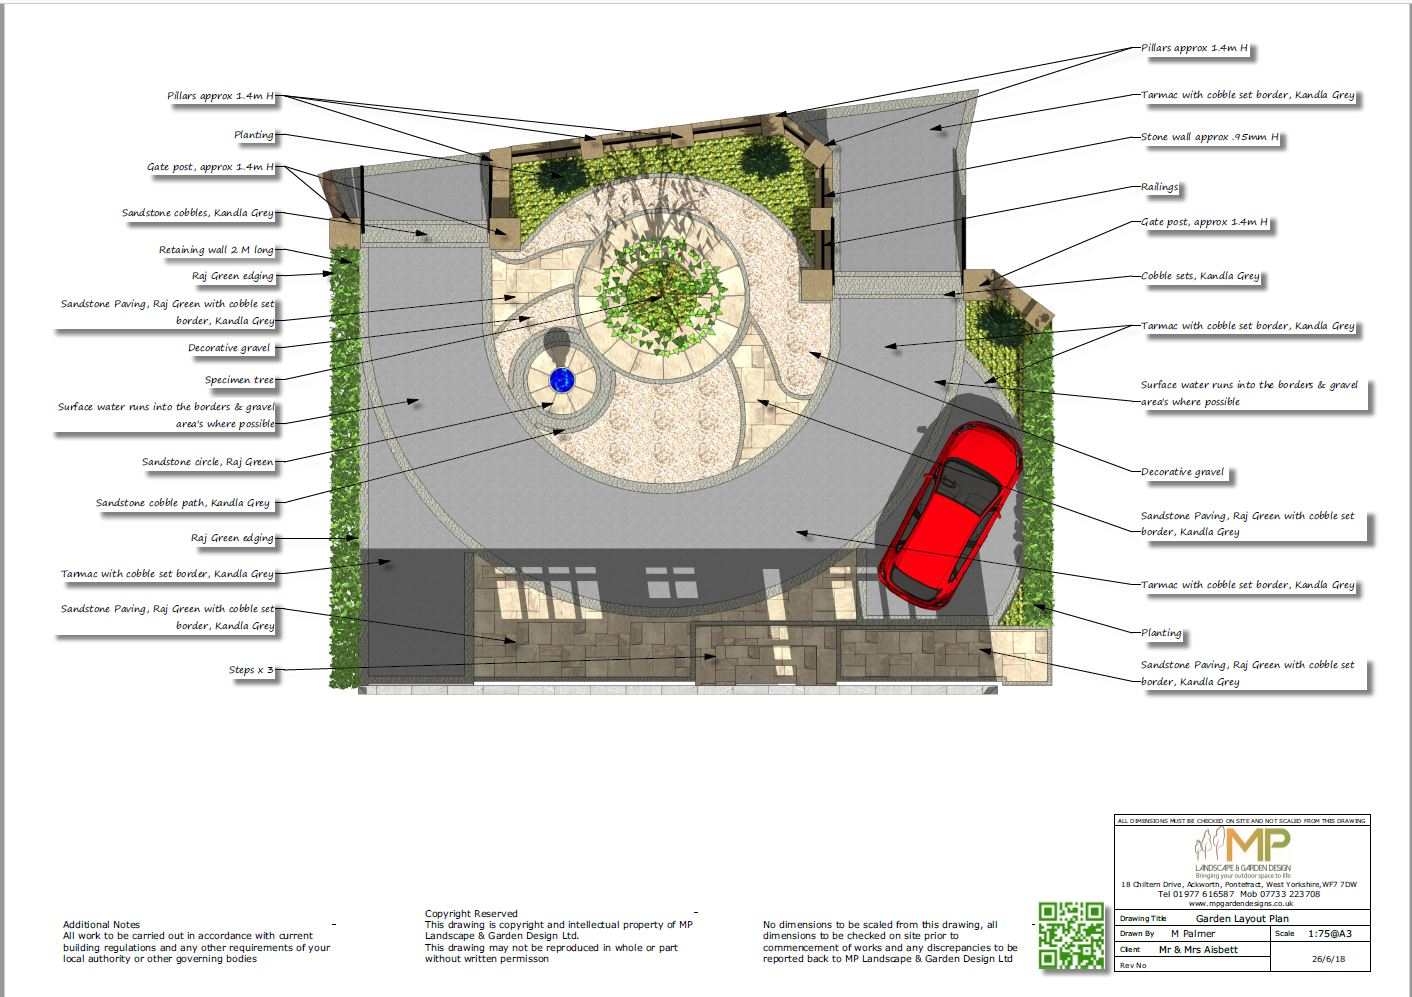 Font garden layout plans for a prperty in Notton, Wakefield.